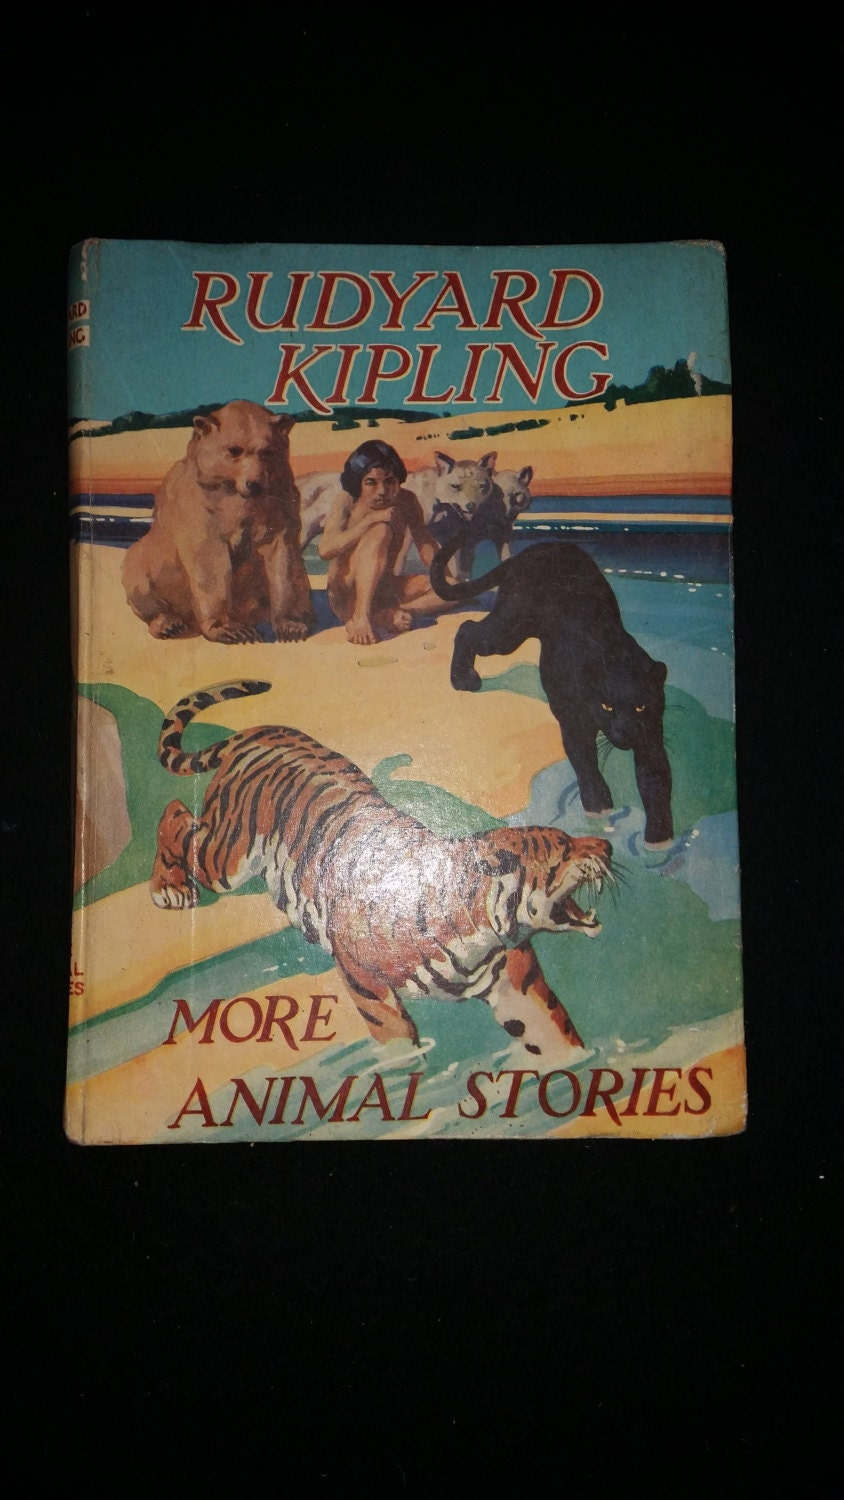 Rudyard Kipling More Animal Stories Vintage Childrens Story Book. Special Limited Edition 1943. Jungle Book Just So Stories.